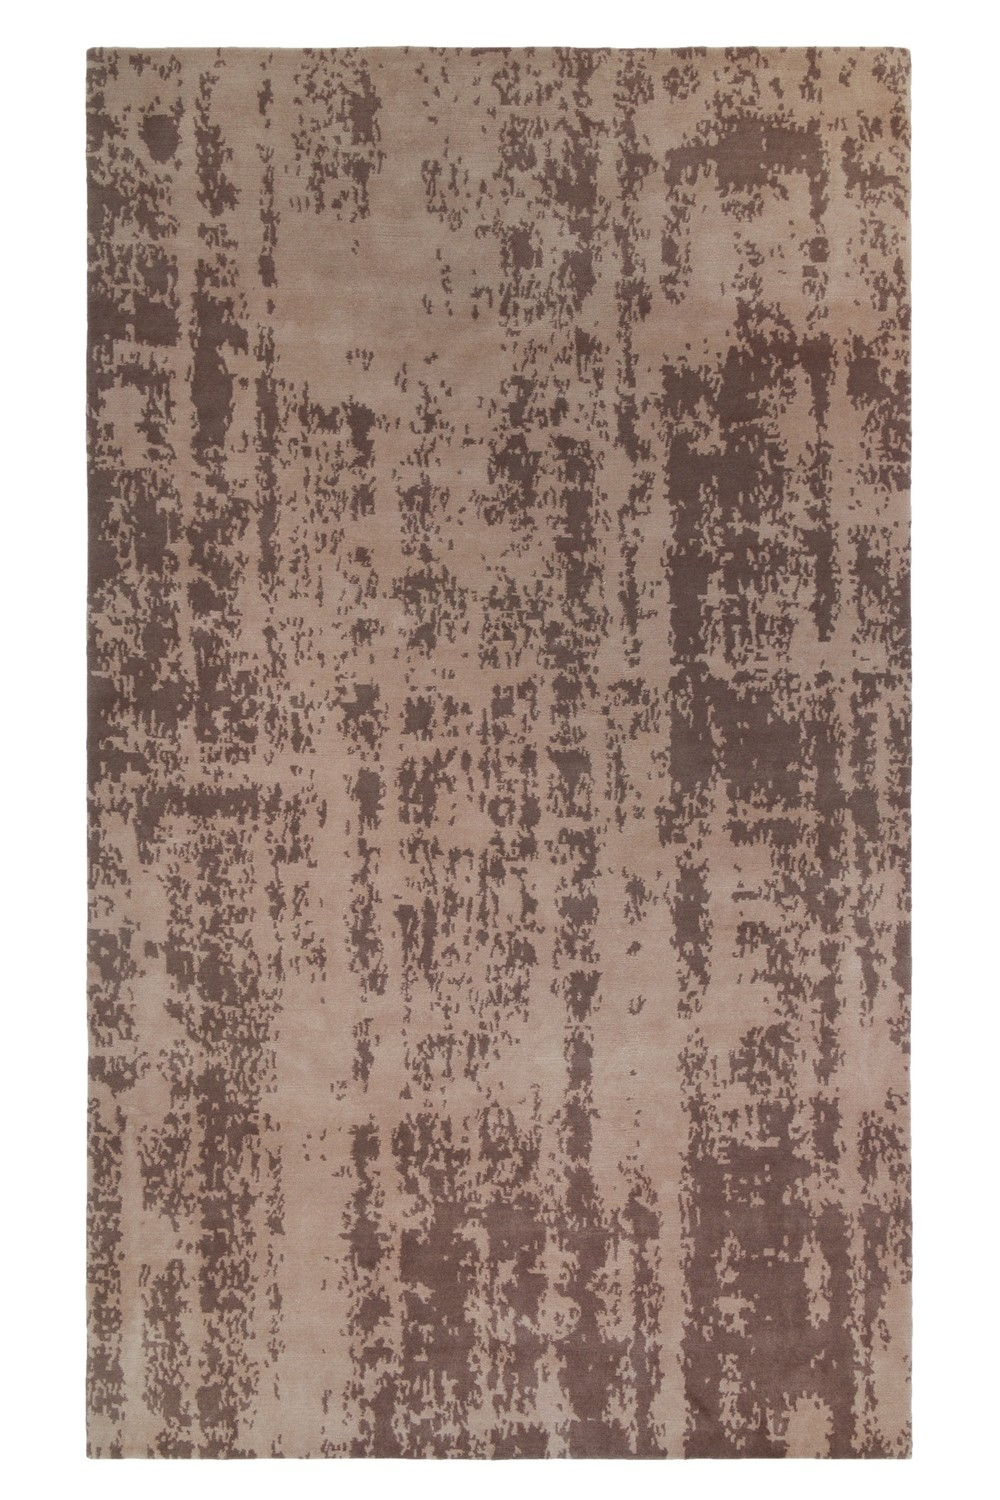 Nepalese Tonal design rug size 3.80 x 2.20 Final Reduction